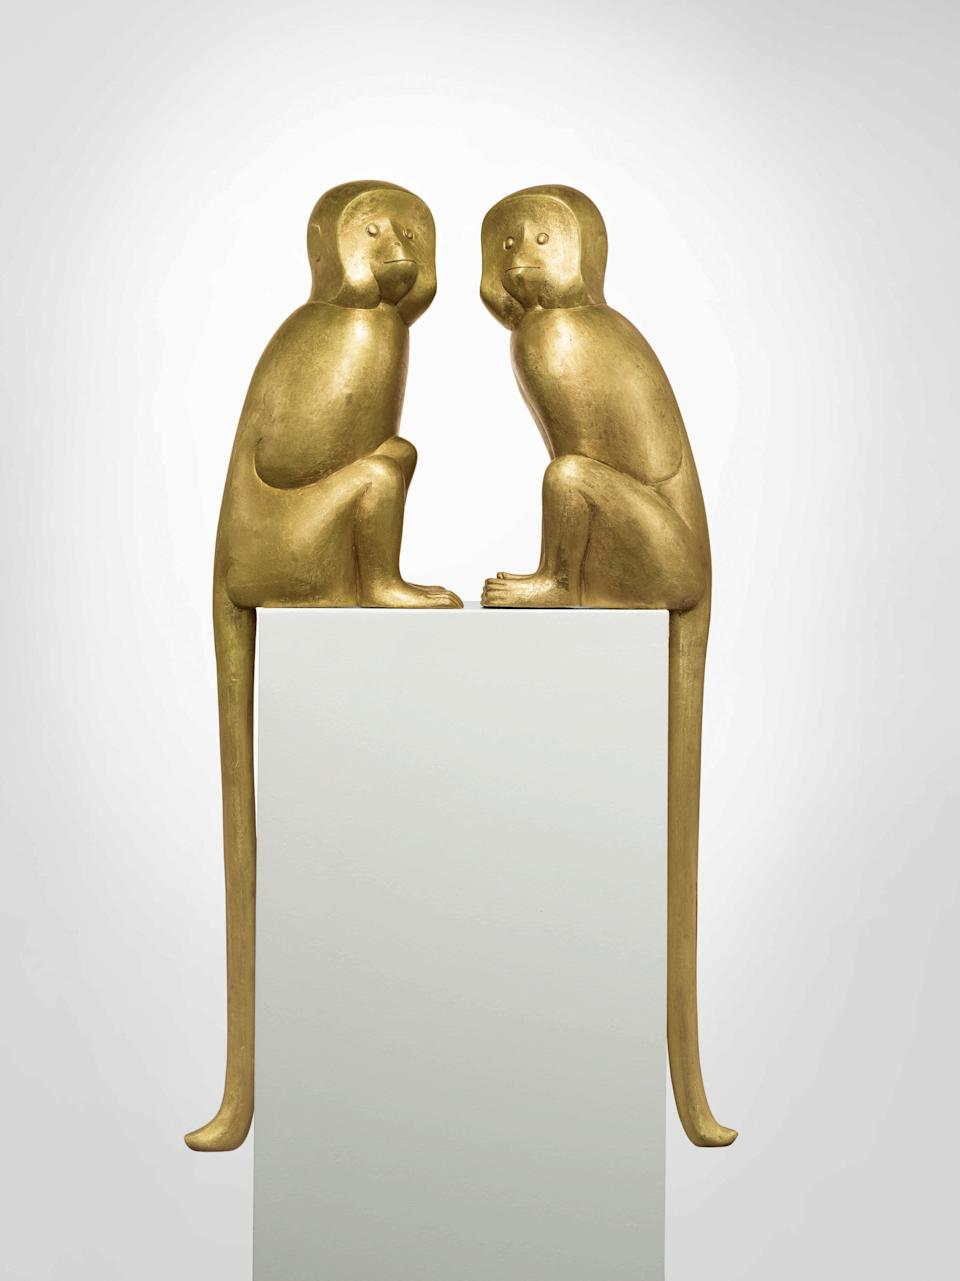 "<div class=""caption""> The Lalanne monkeys. </div> <cite class=""credit"">Photo: Courtesy of Sotheby's</cite>"